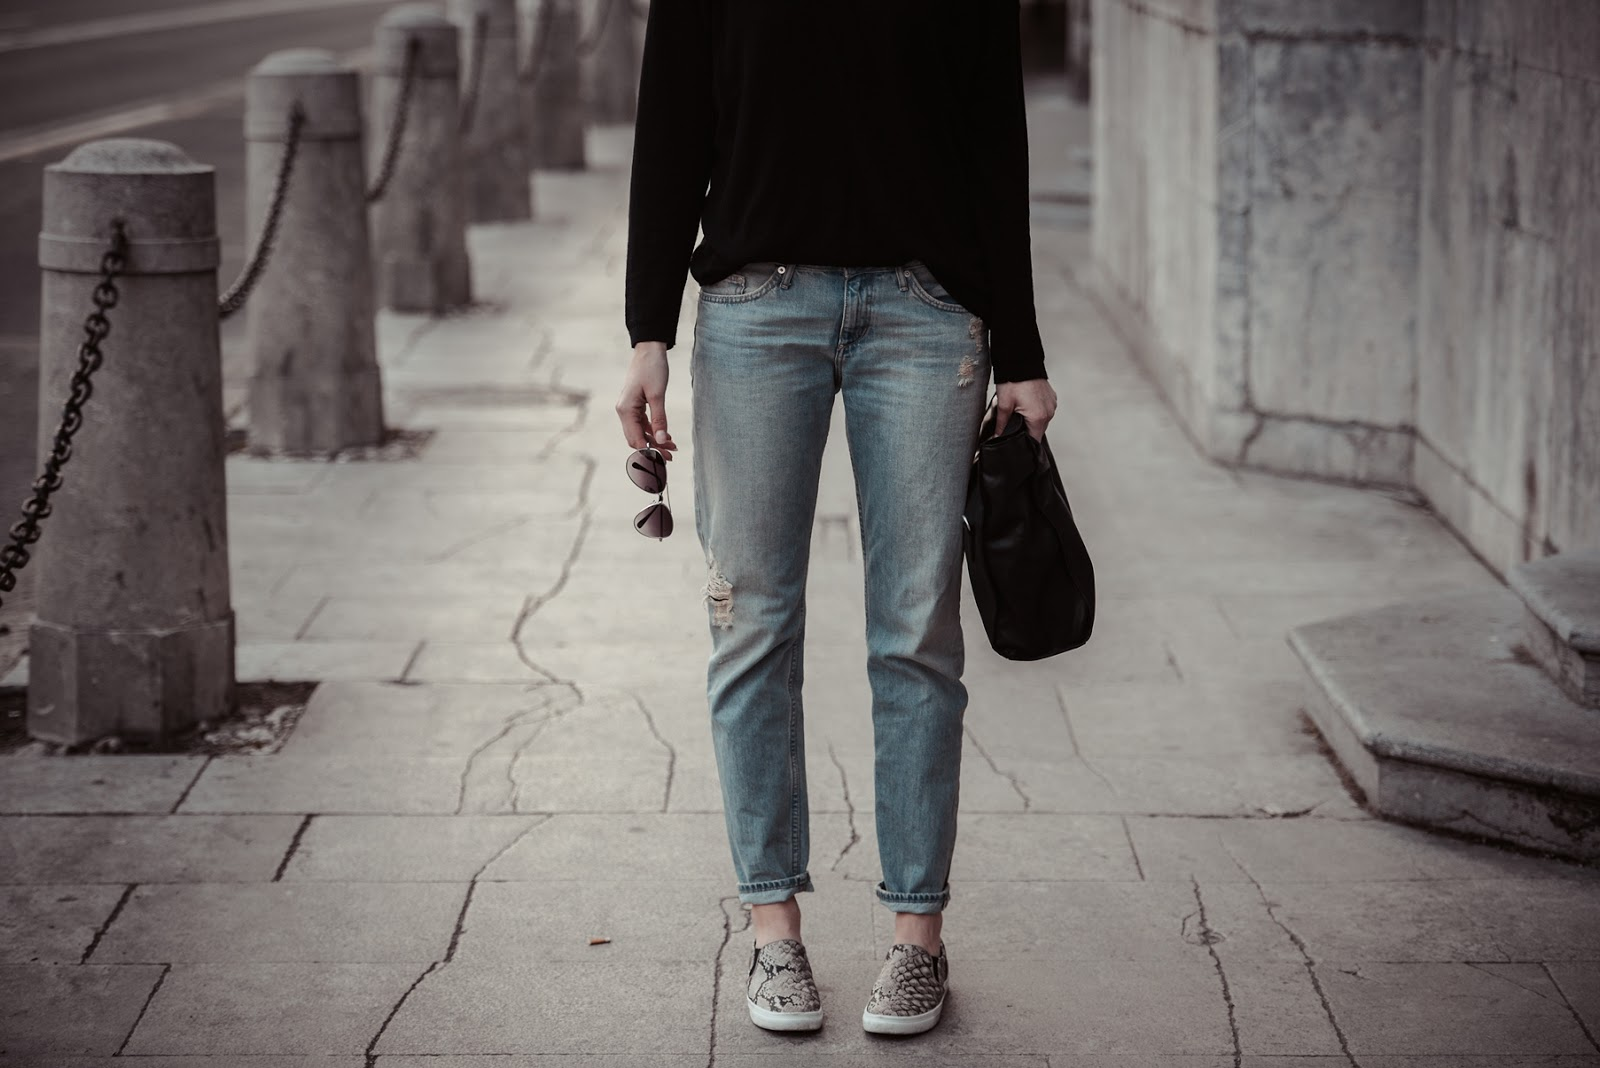 snake slip ons hm, hm boyfriend jeans light, black sweater outfit, simple minimalistic casual outfit, style blogger, fashion blog